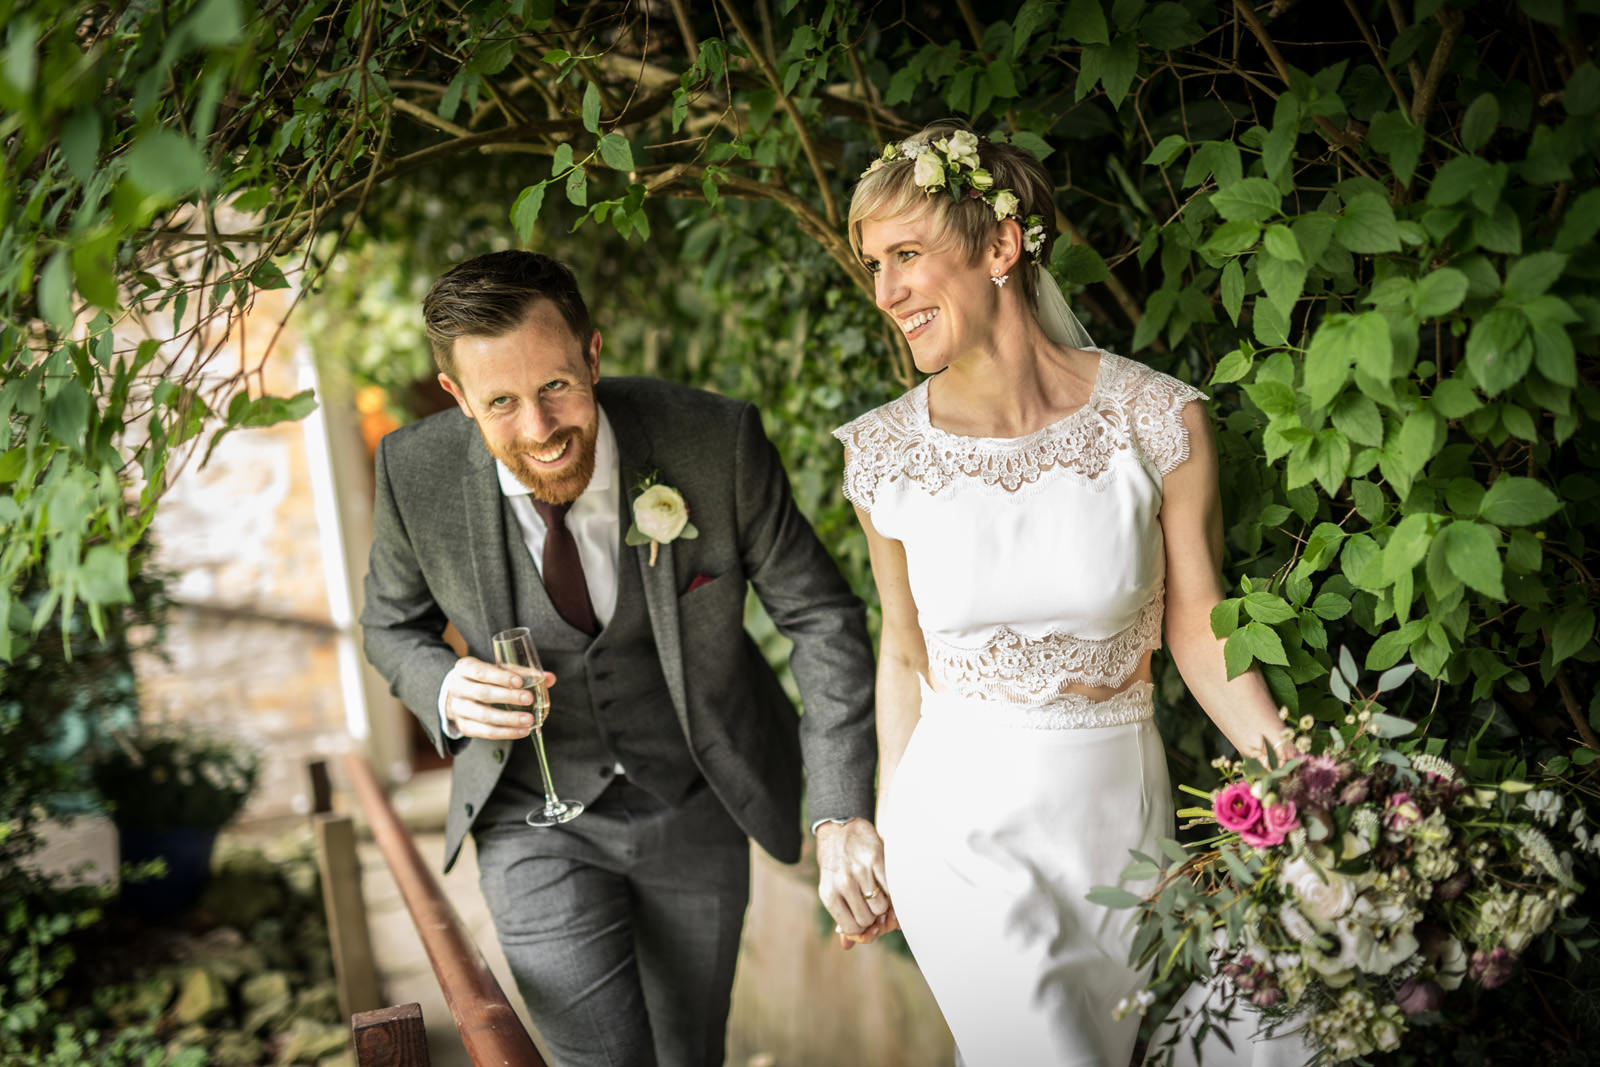 Newlyweds arrive to their wedding reception in Granny's garden